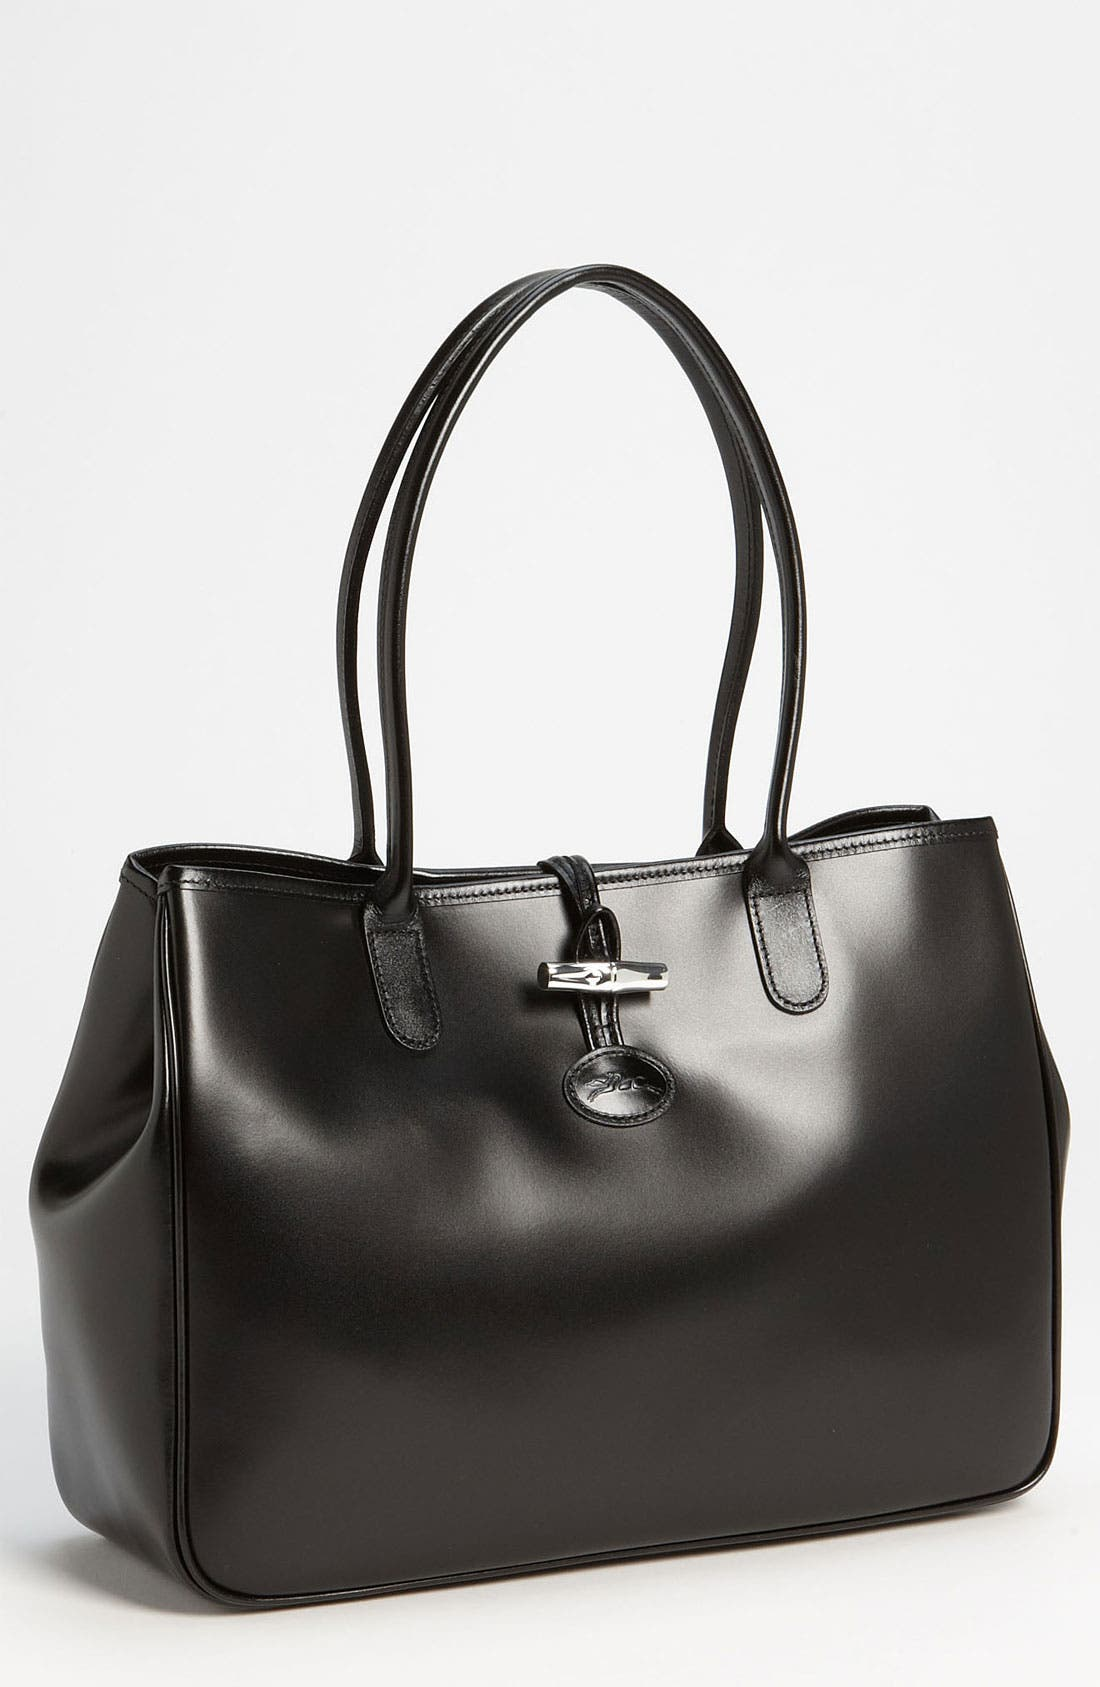 Main Image - Longchamp 'Roseau' Shoulder Tote